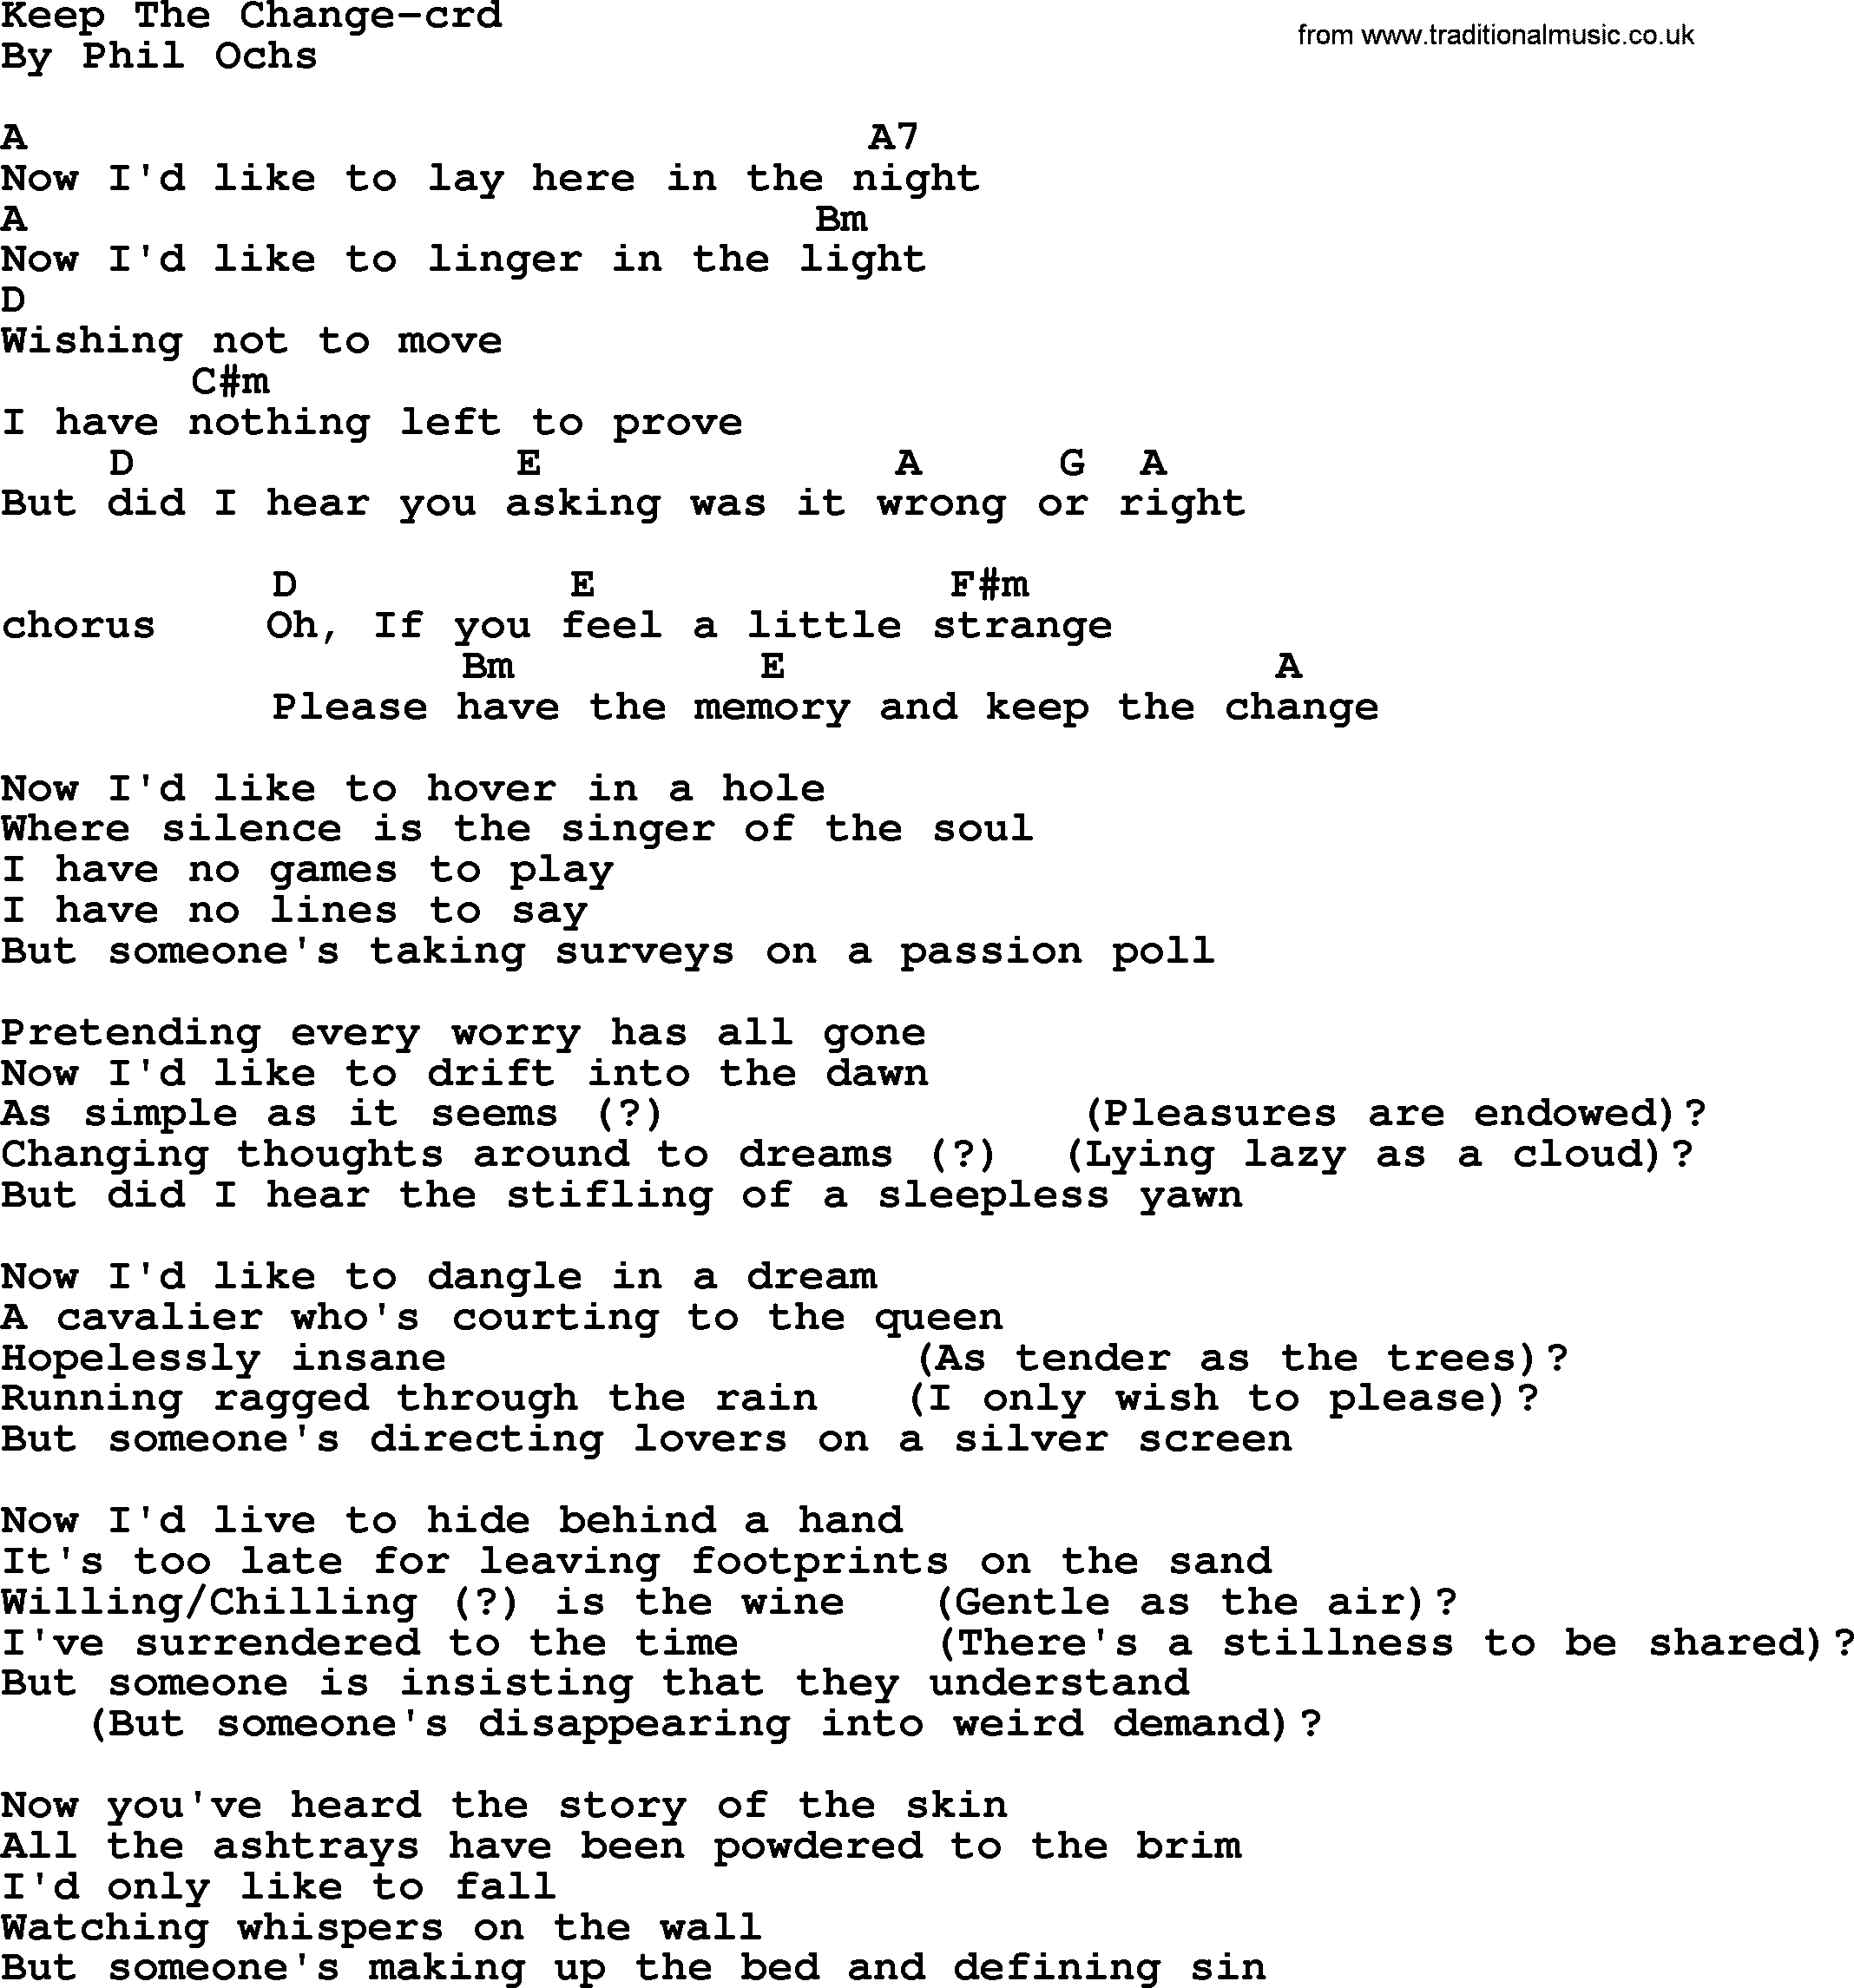 Phil Ochs Song Keep The Change Lyrics And Chords